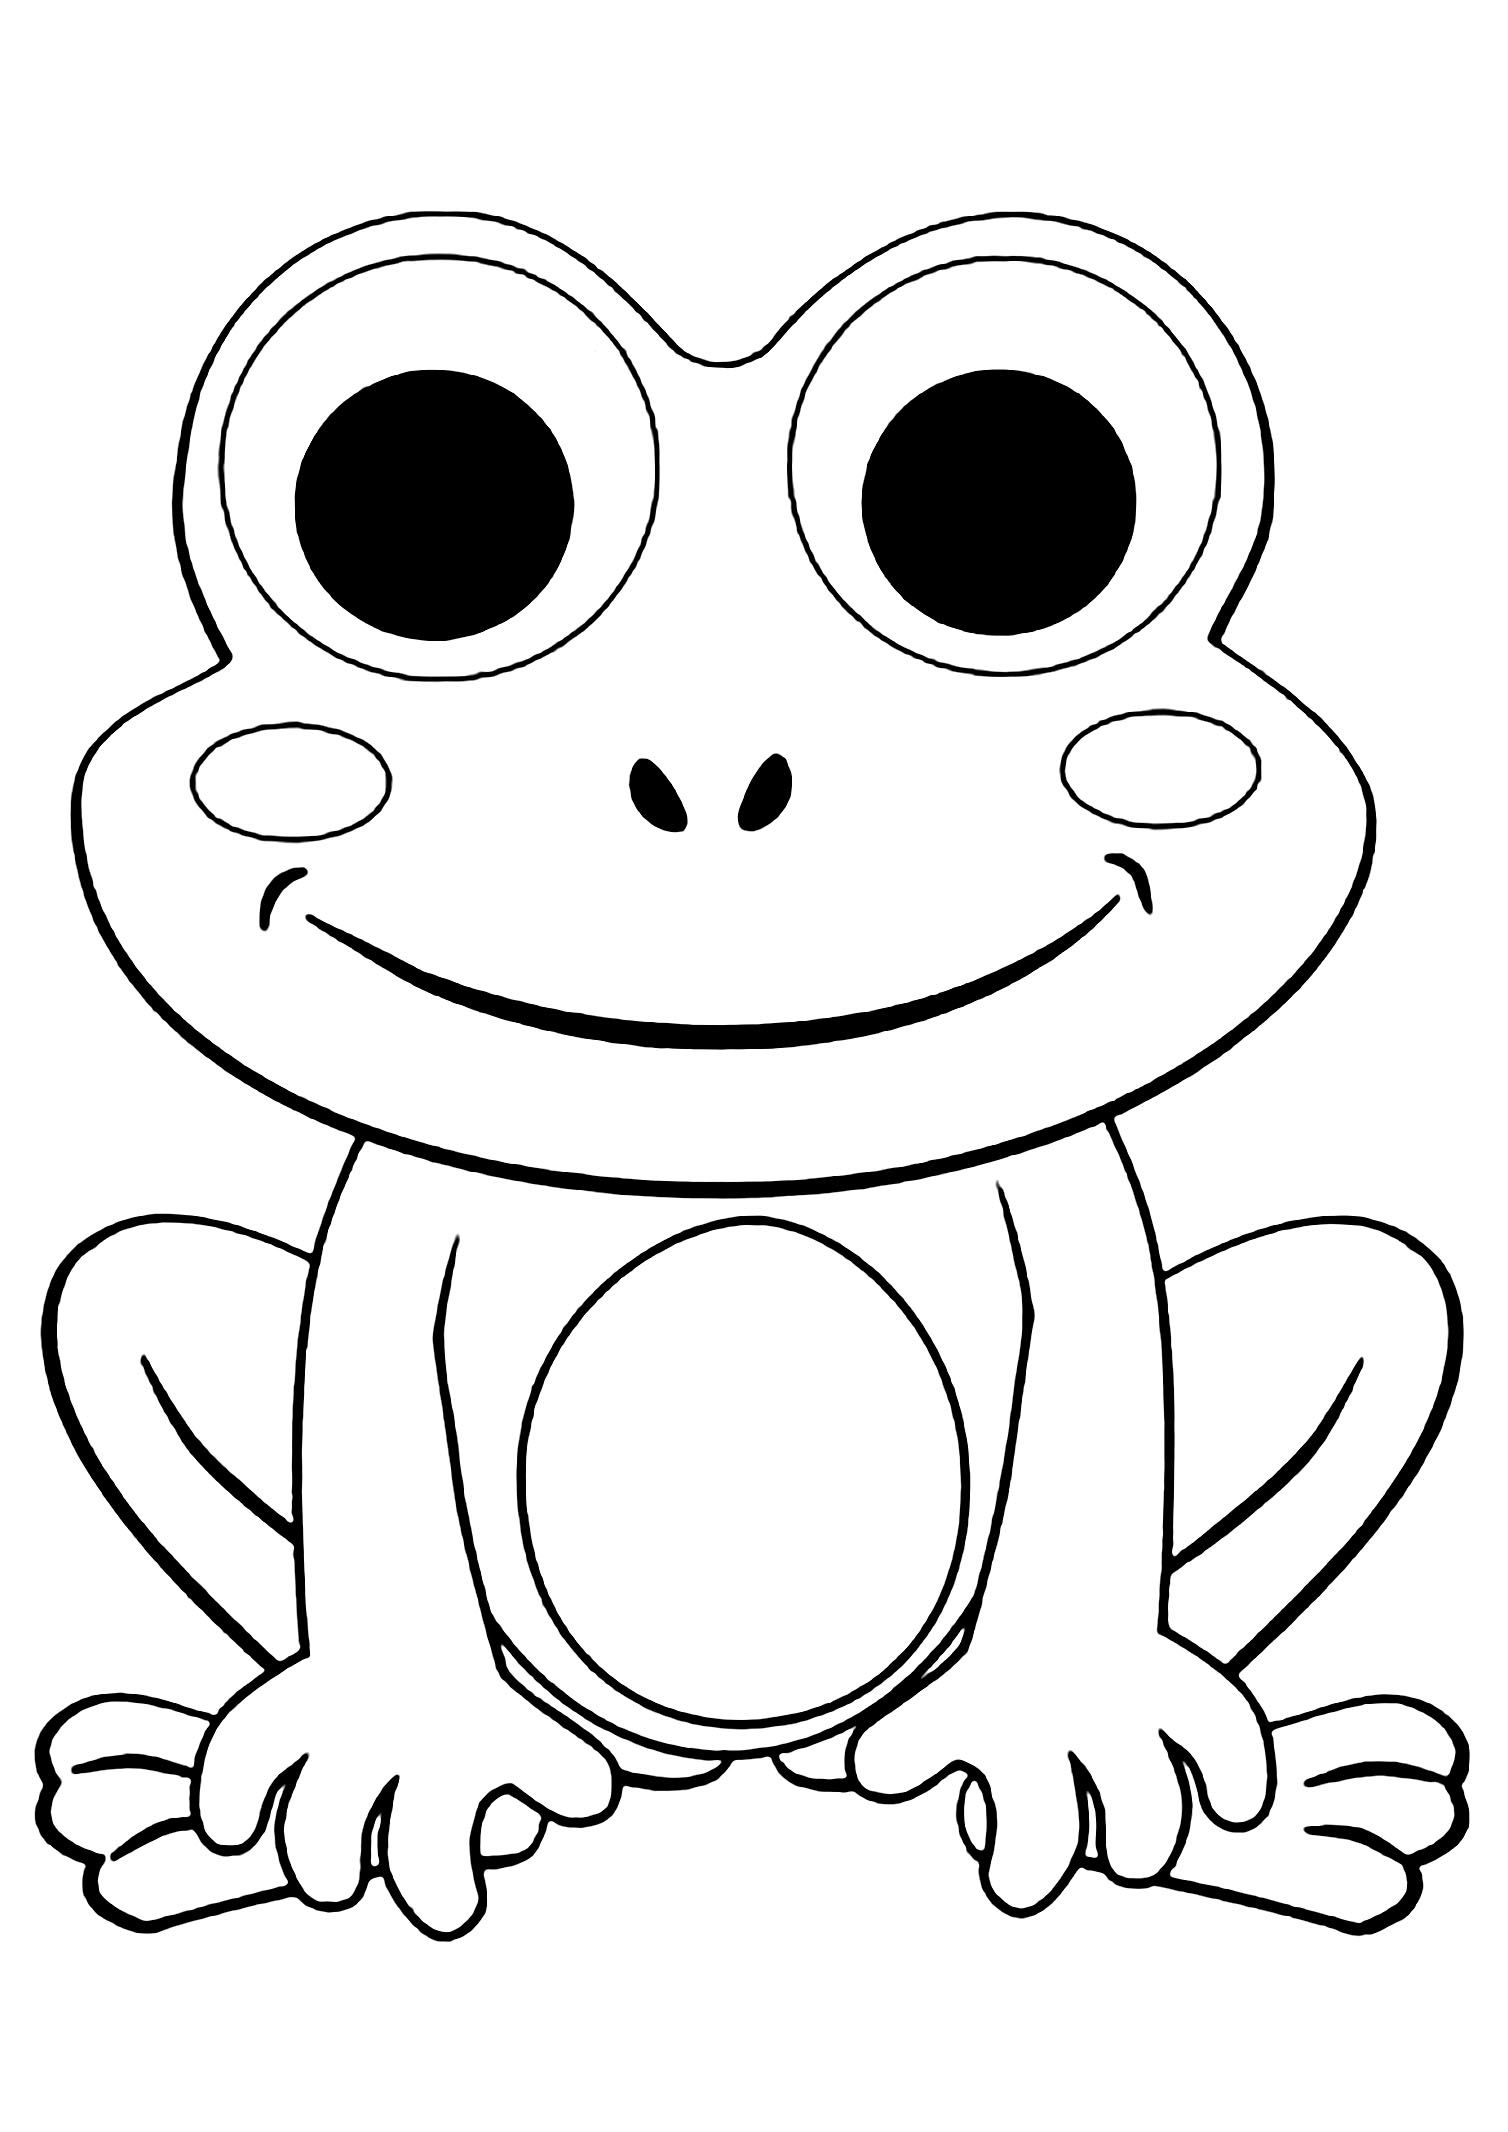 Frogs To Print For Free Printable Frogs Coloring Page To Print And Color From The Gallery F Frog Coloring Pages Cartoon Coloring Pages Cute Coloring Pages